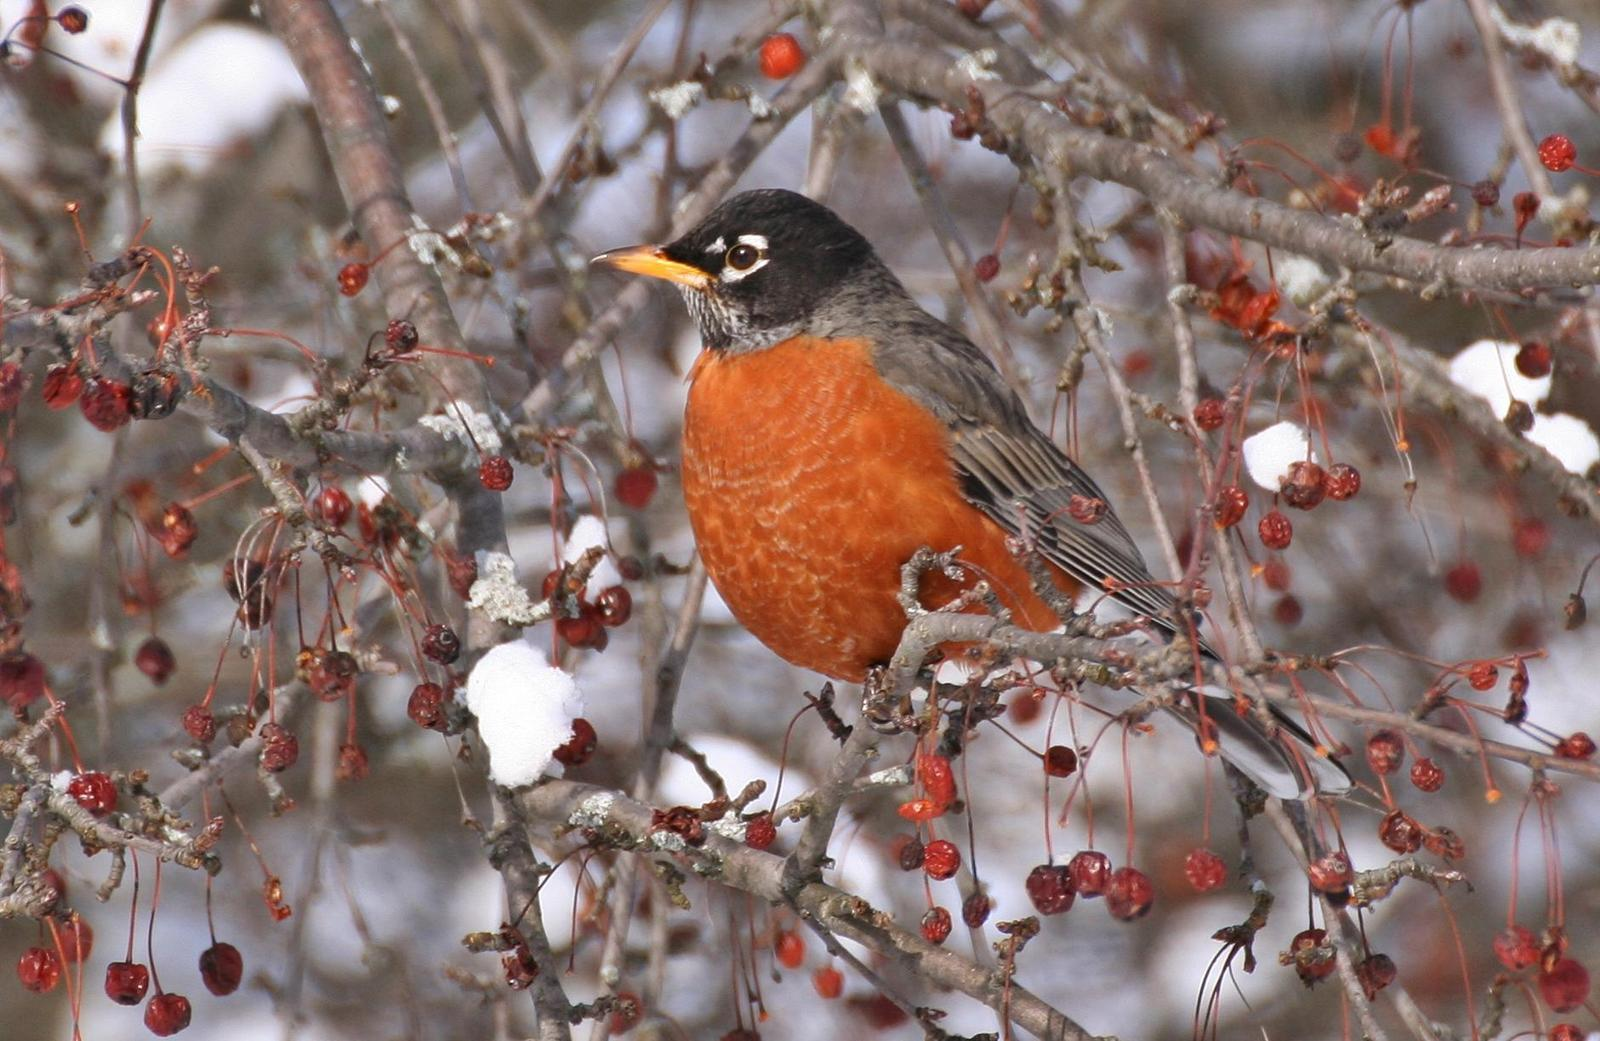 American Robin Photo by Andrew Theus